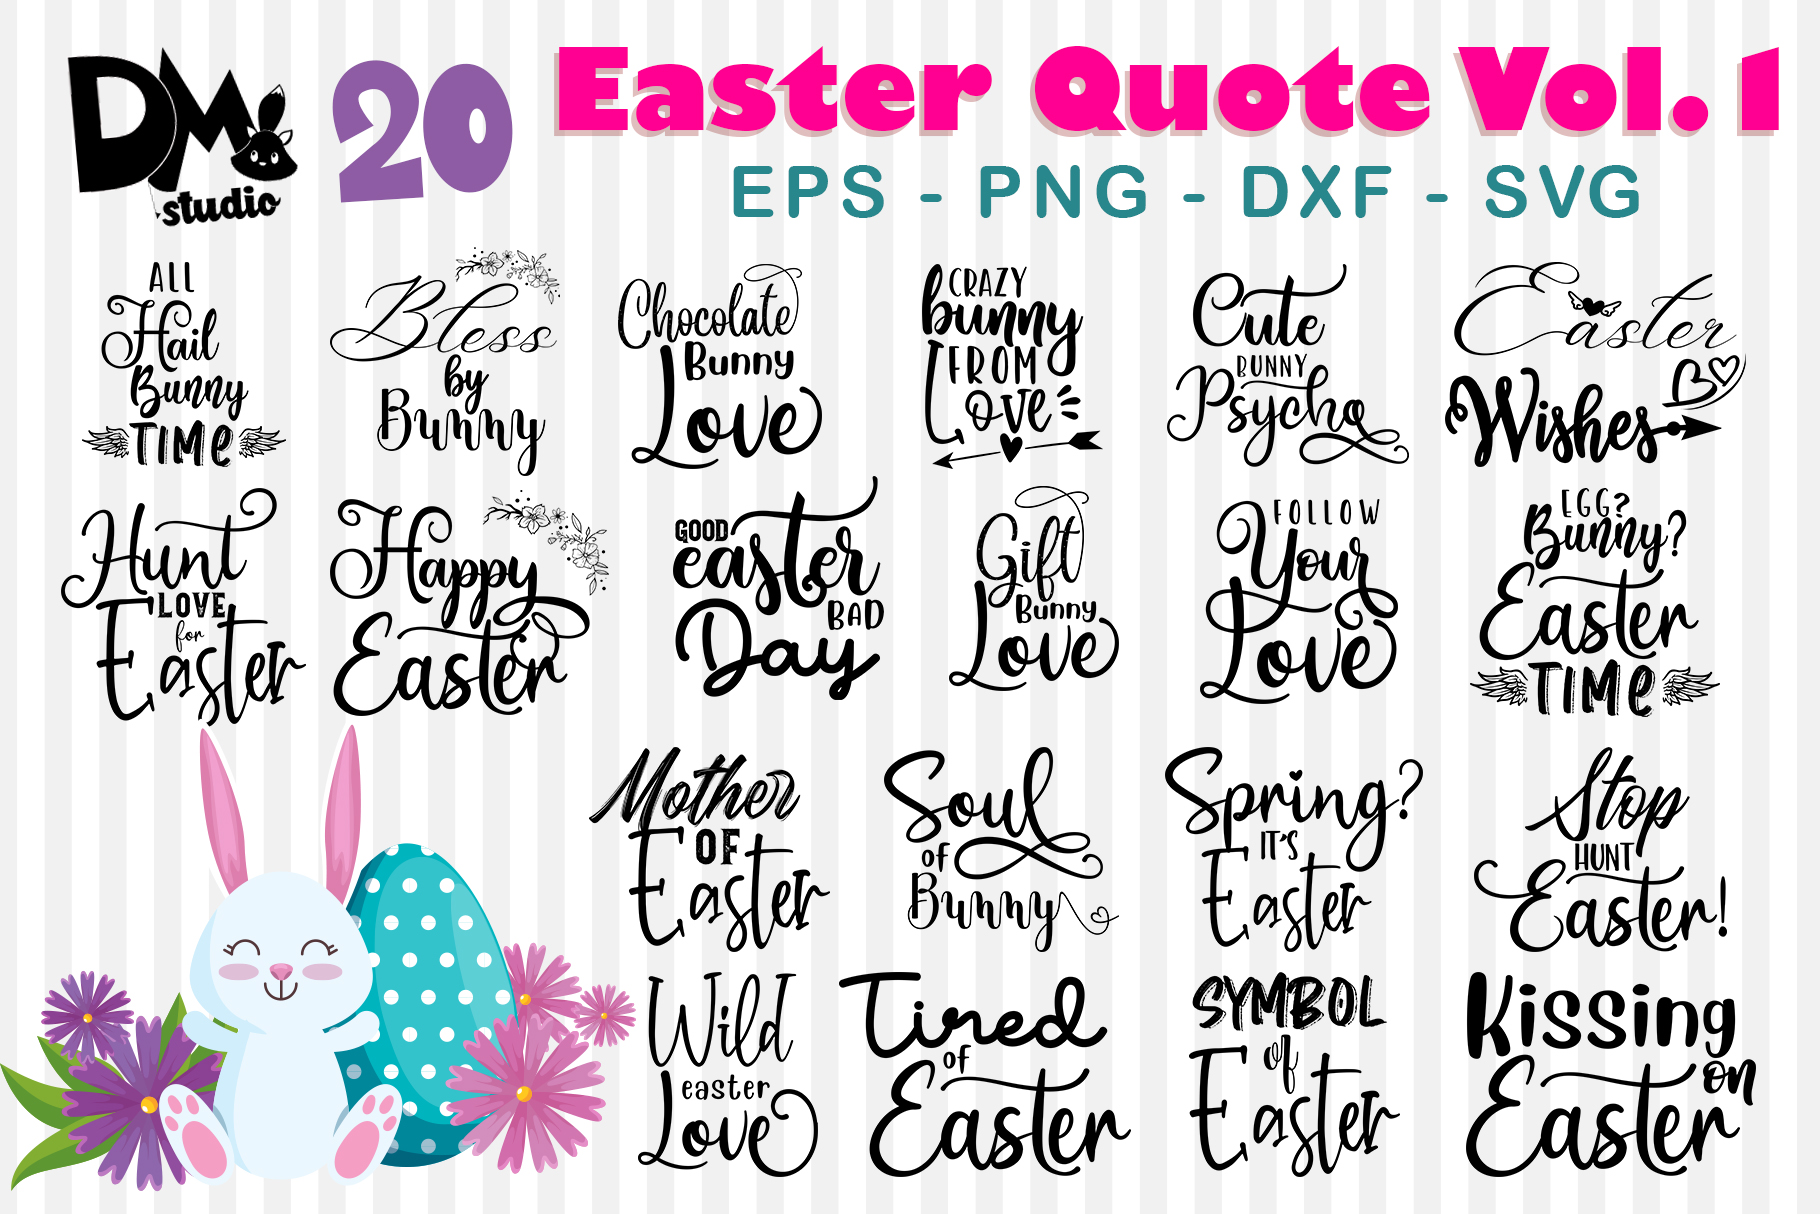 Download Free 20 Easter Quote Vol 1 Graphic By Sharon Dmstudio Creative for Cricut Explore, Silhouette and other cutting machines.